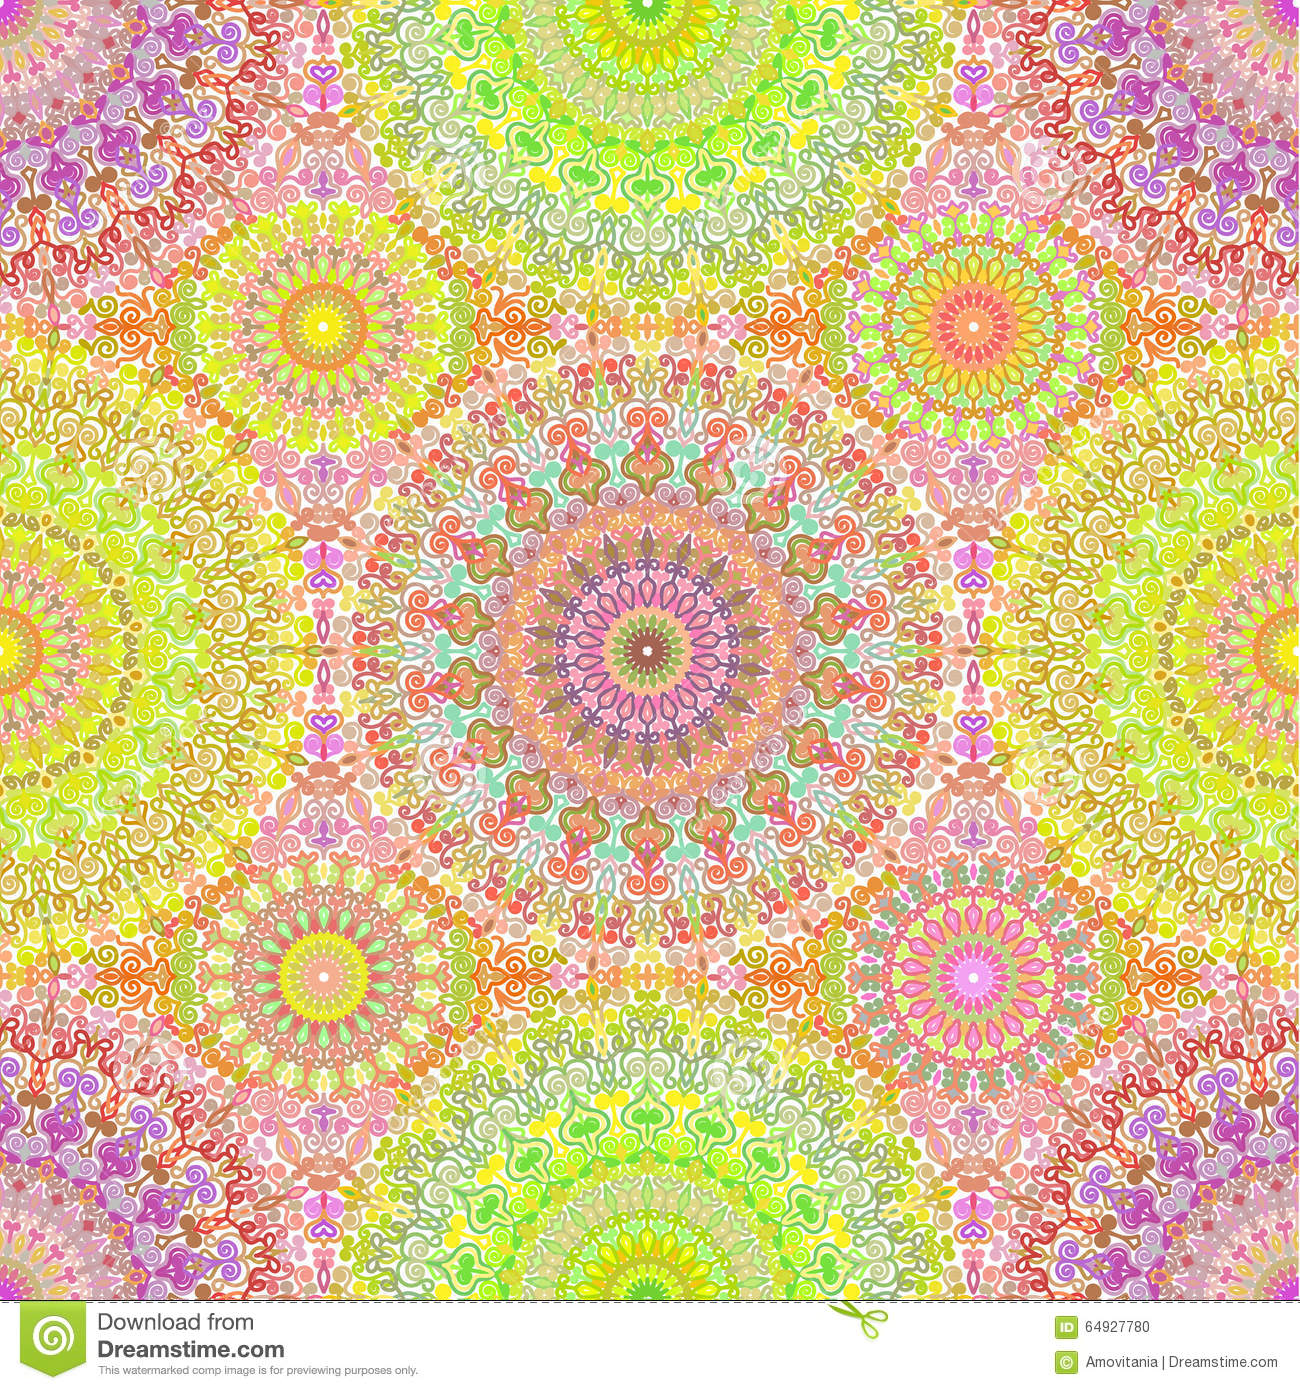 this is a term paper on hippies The following term paper is dealing with the era of the hippies, their ideals, their music and the question what makes a person a hippie therefore, the social and political background is described to show how the movement could develop.